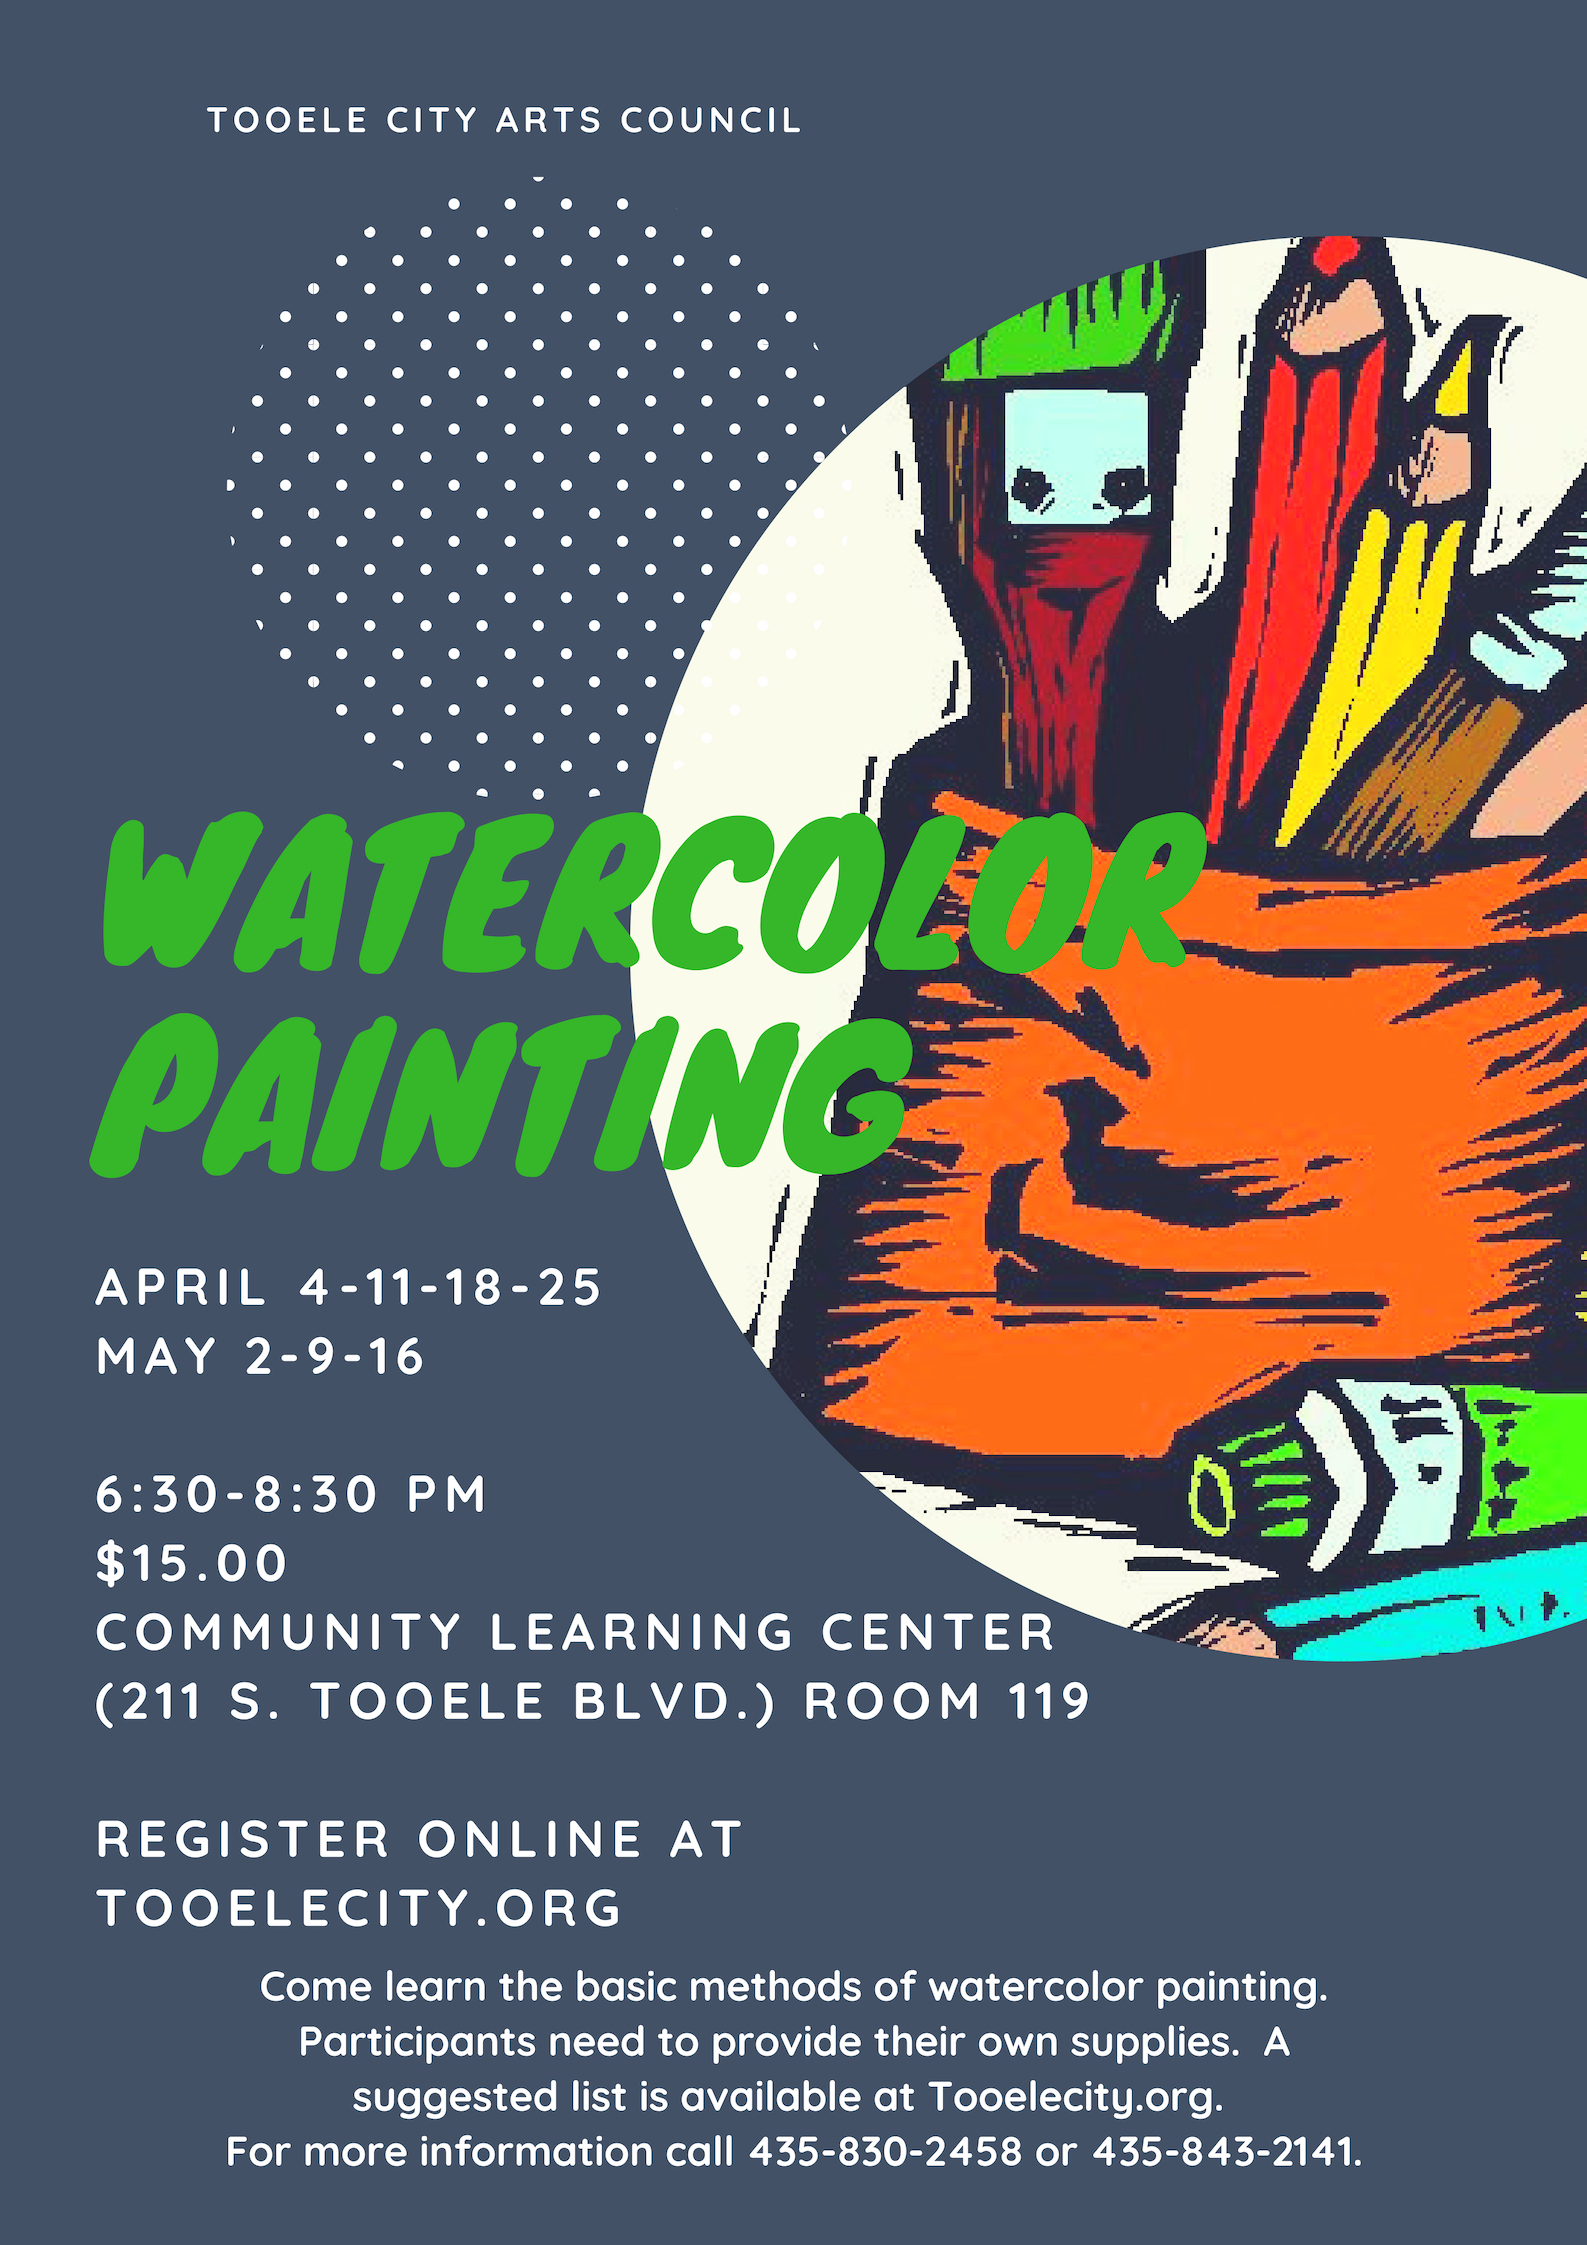 Watercolor Painting 2019:  April 4 - May 16, 2019